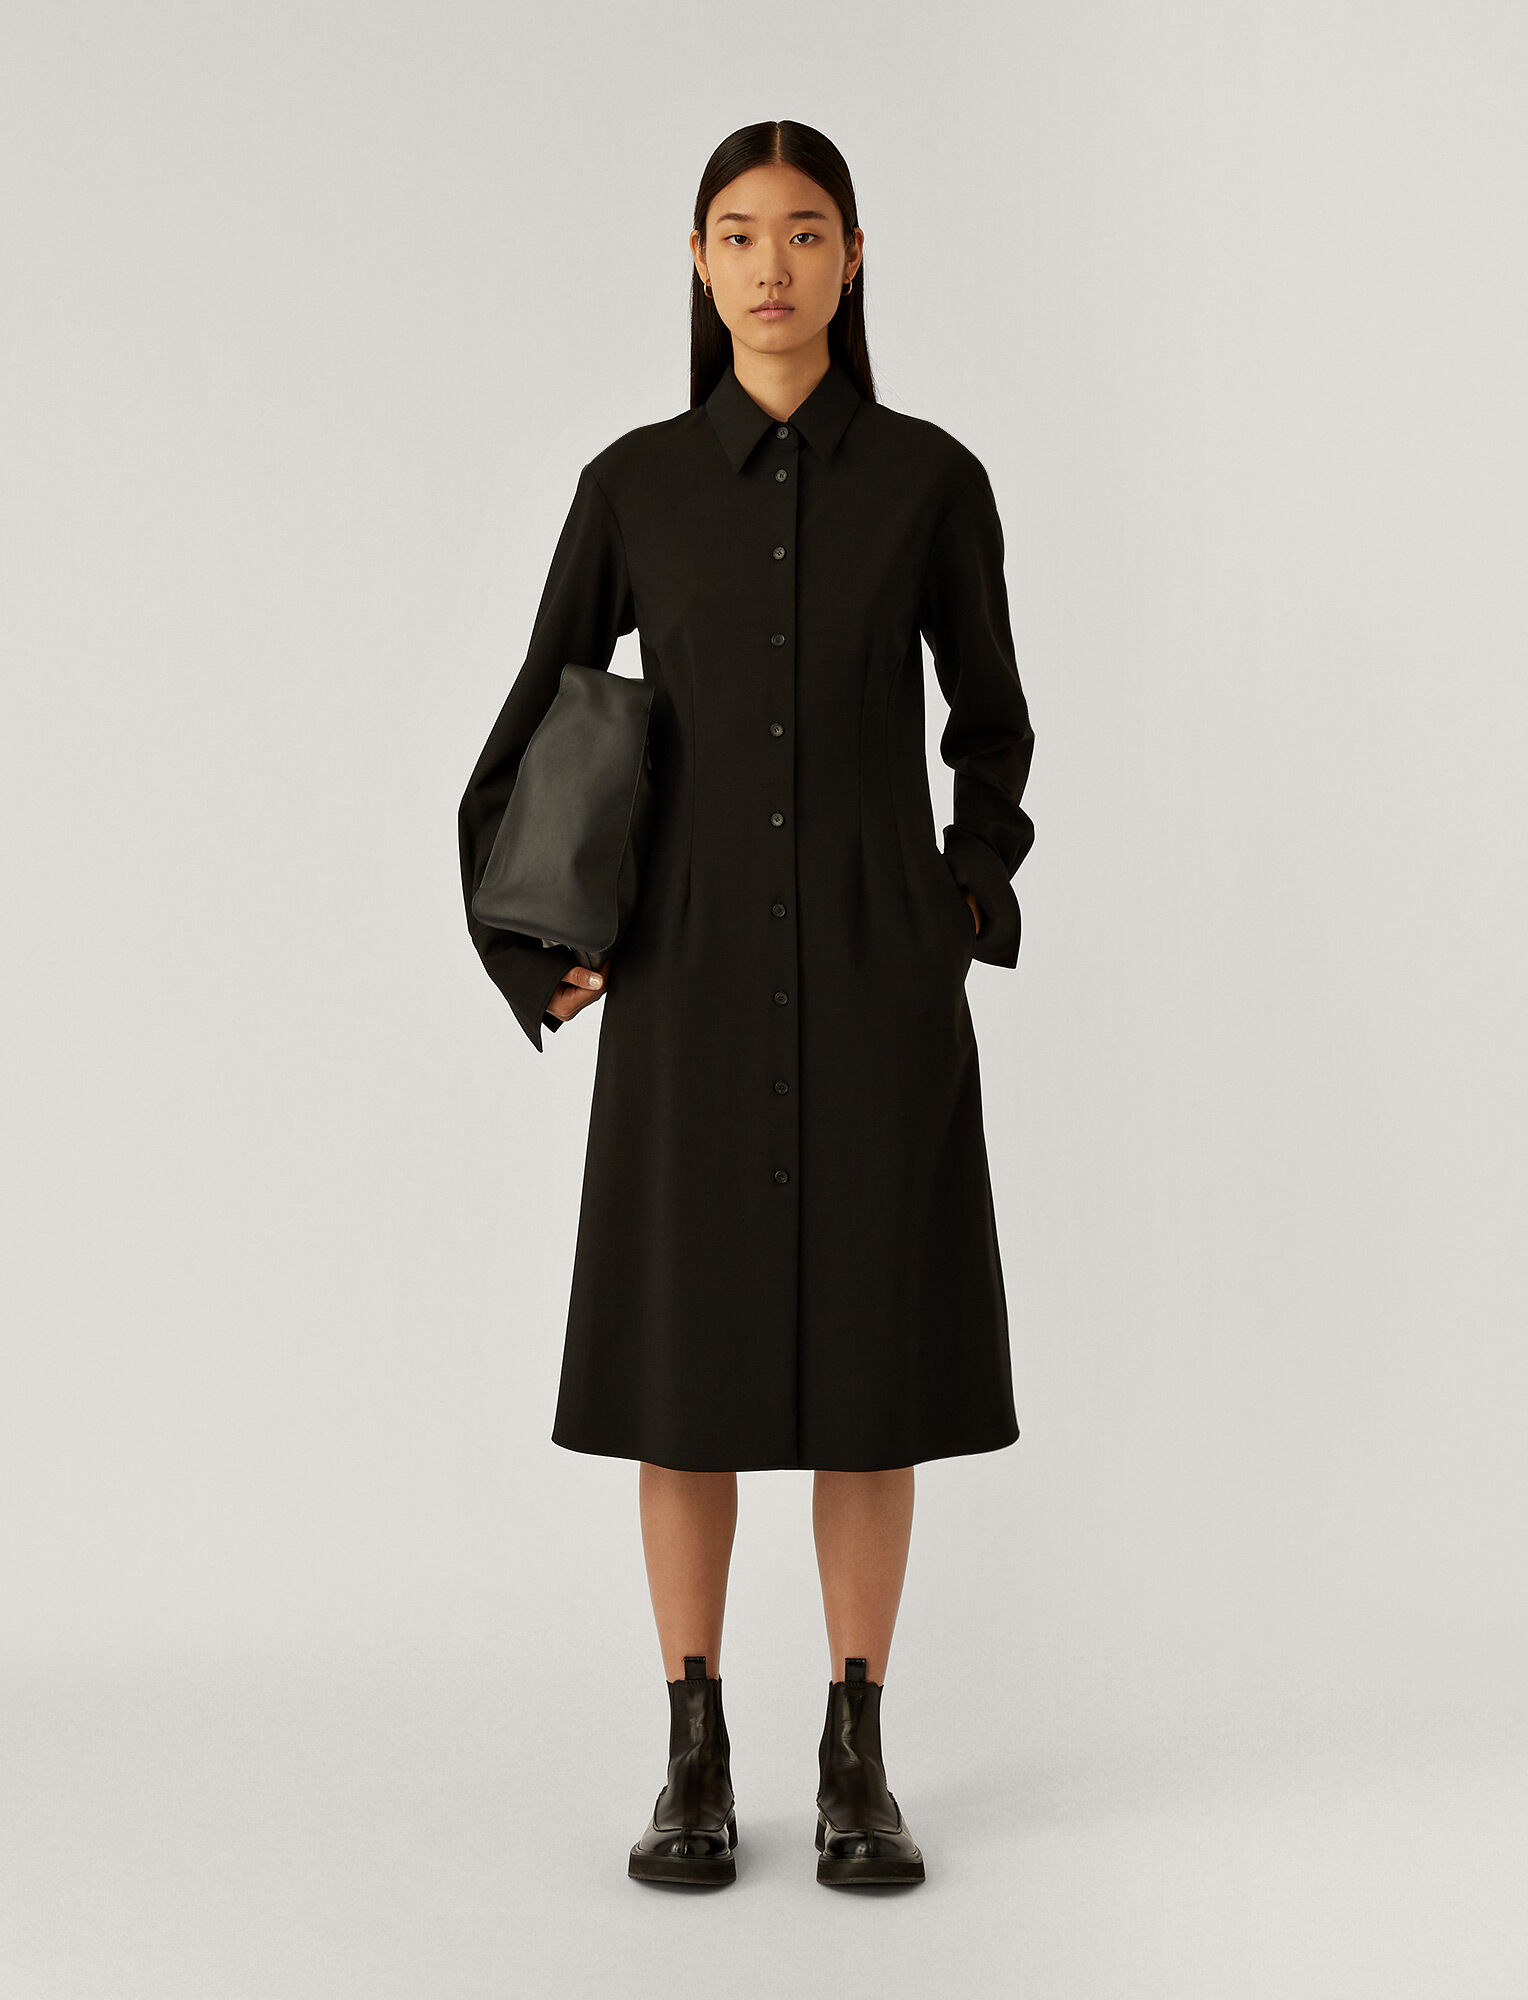 Joseph, Diling Light Wool Suiting Dress, in Black